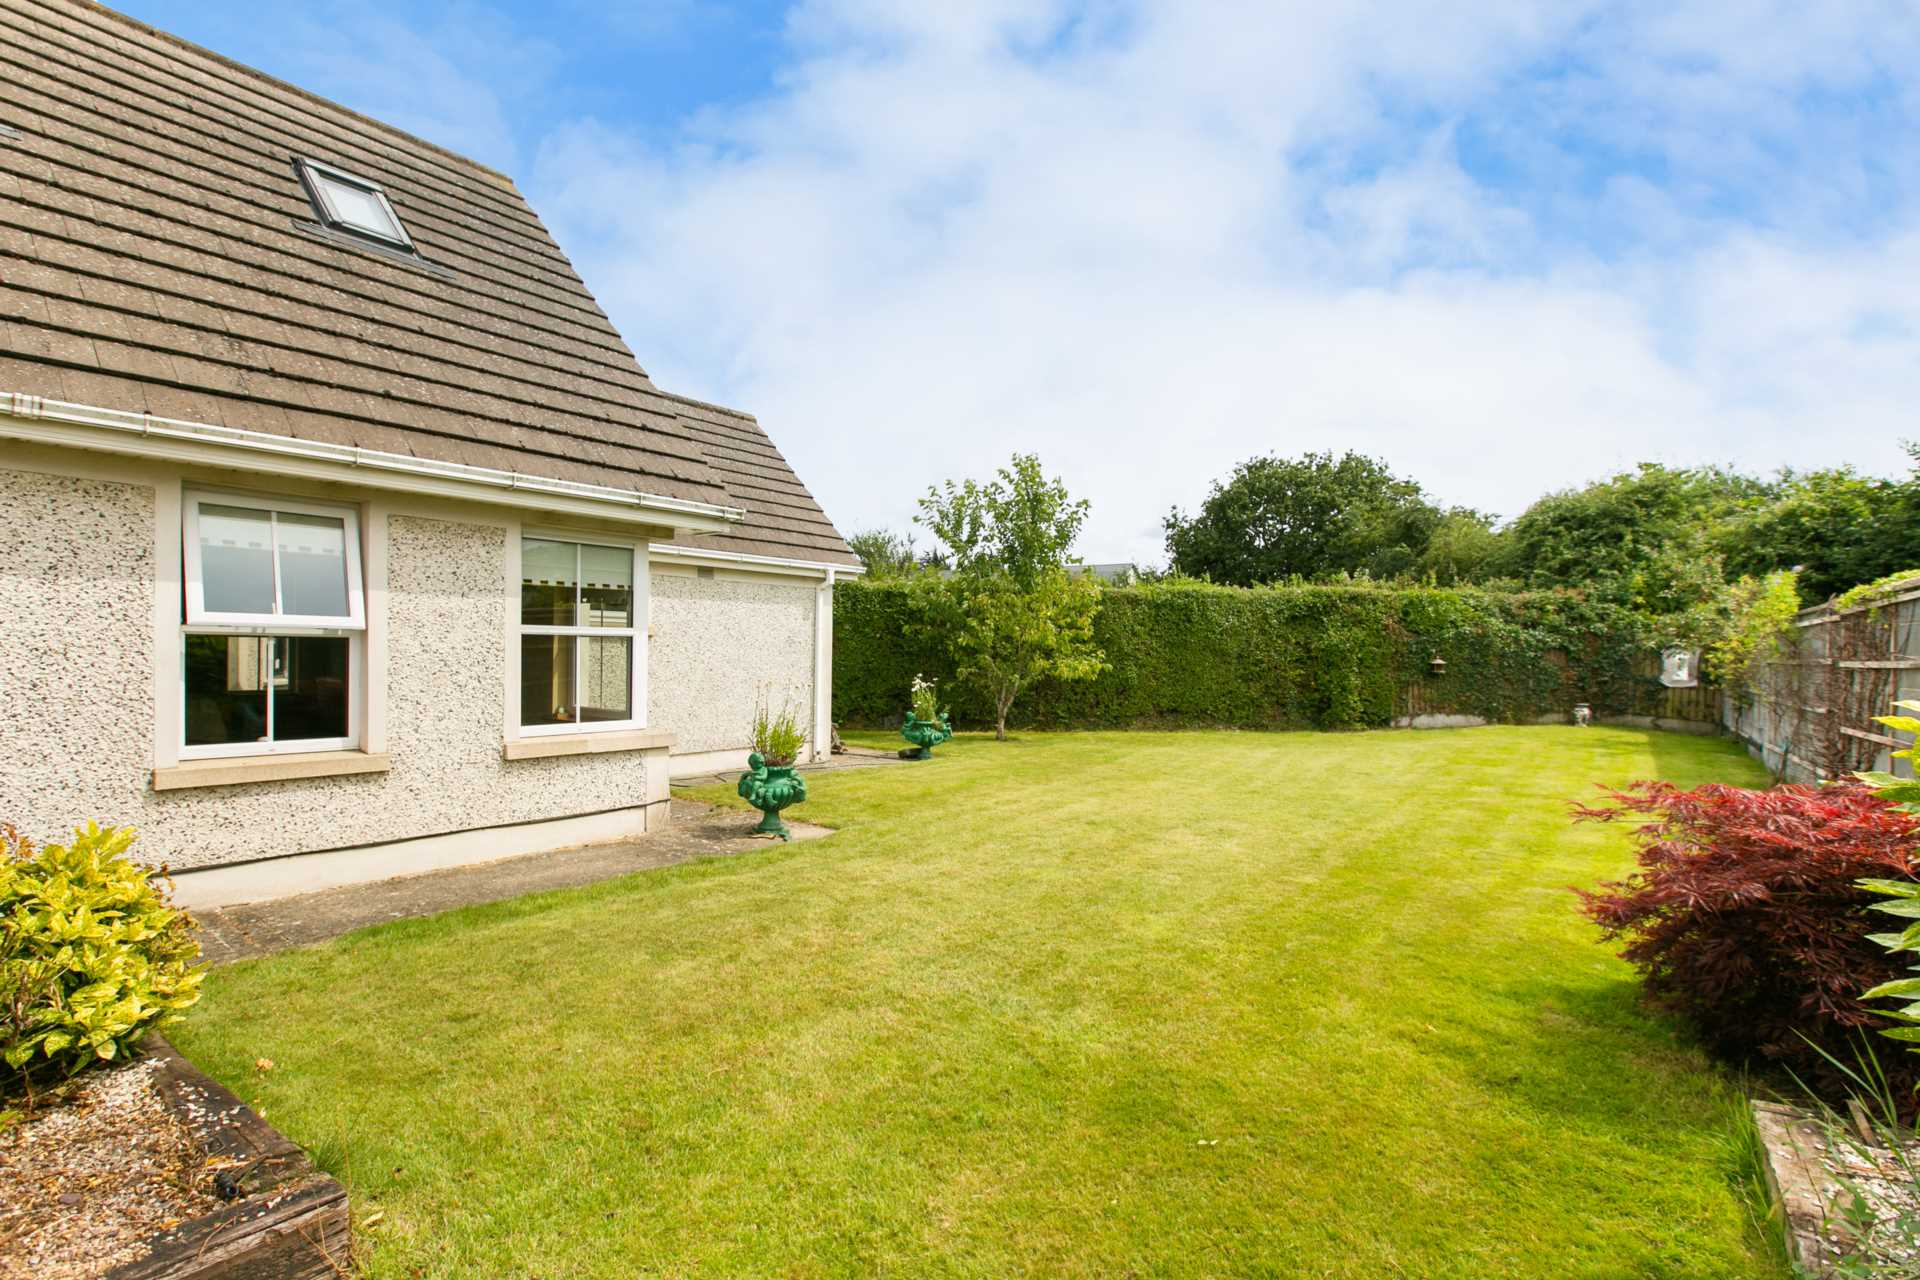 20a Old Court Cottages, Ballycullen, Dublin 24, Image 16